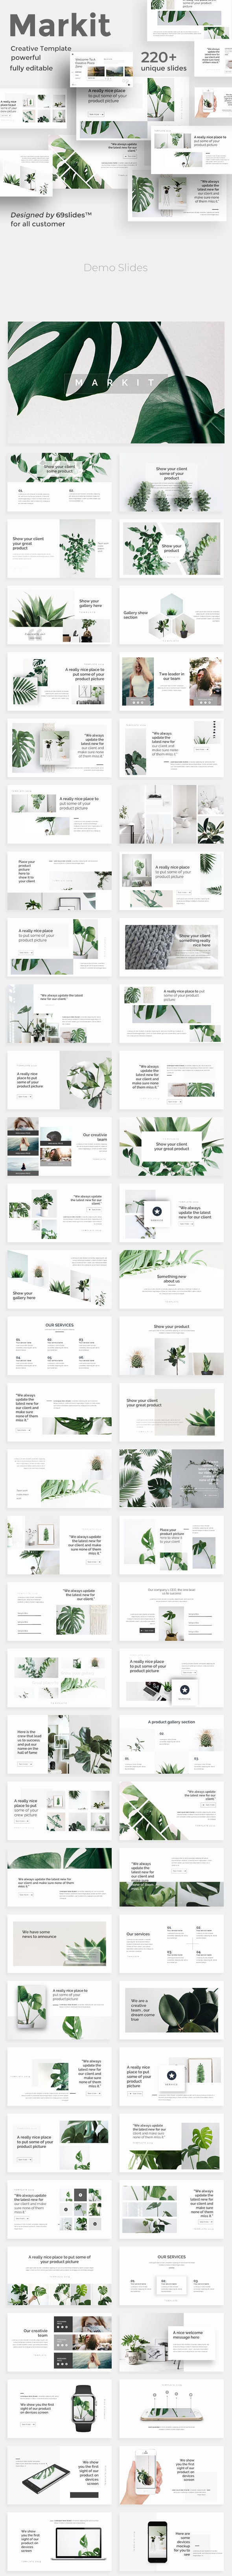 Markit Minimal Google Slide Template - Google Slides Presentation Templates